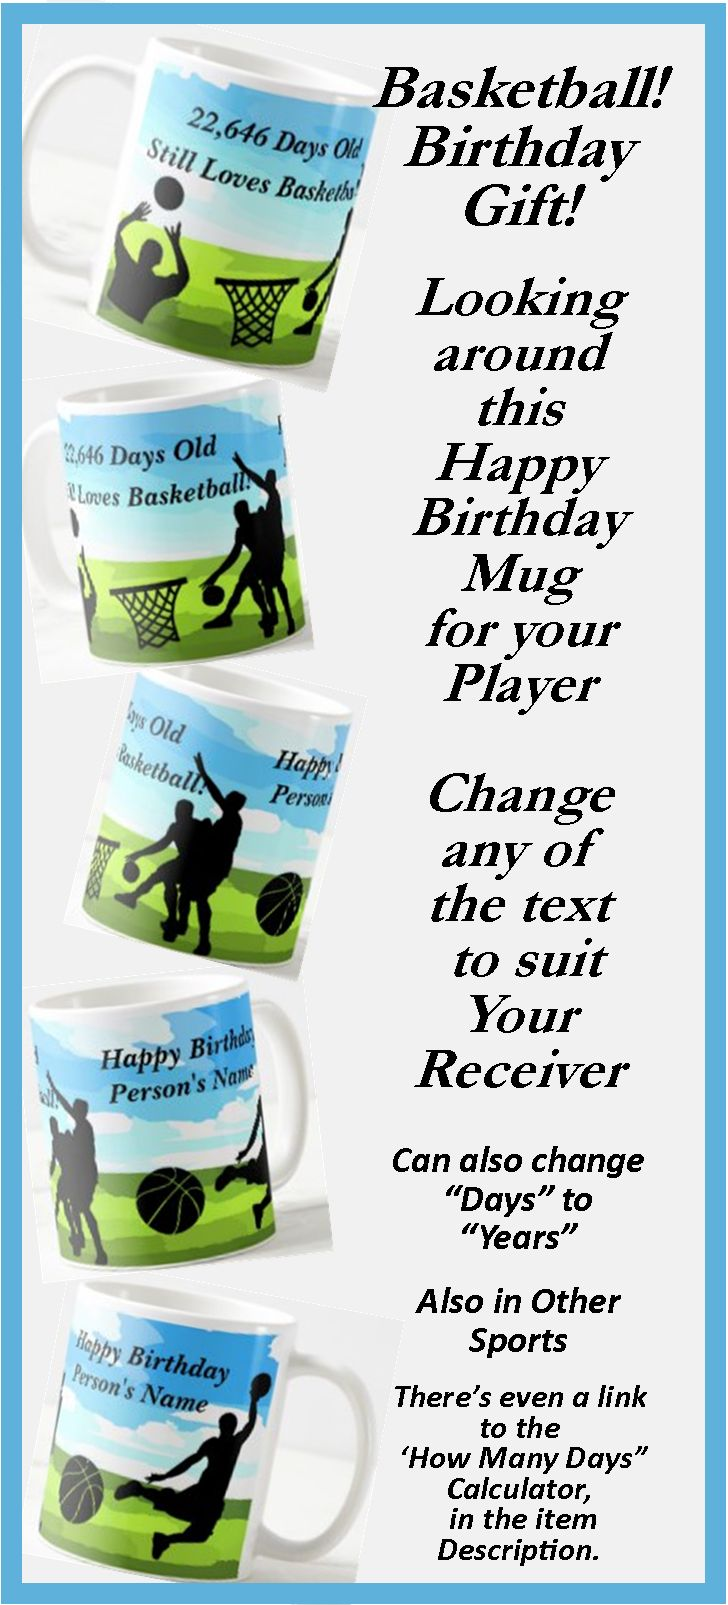 """Great Birthday Gift for the Basketball Player. - - Change the Days or Years, - - - Change the Name to suit your Recipient. - - there's a """"How many Days"""" calculator link in the item description."""